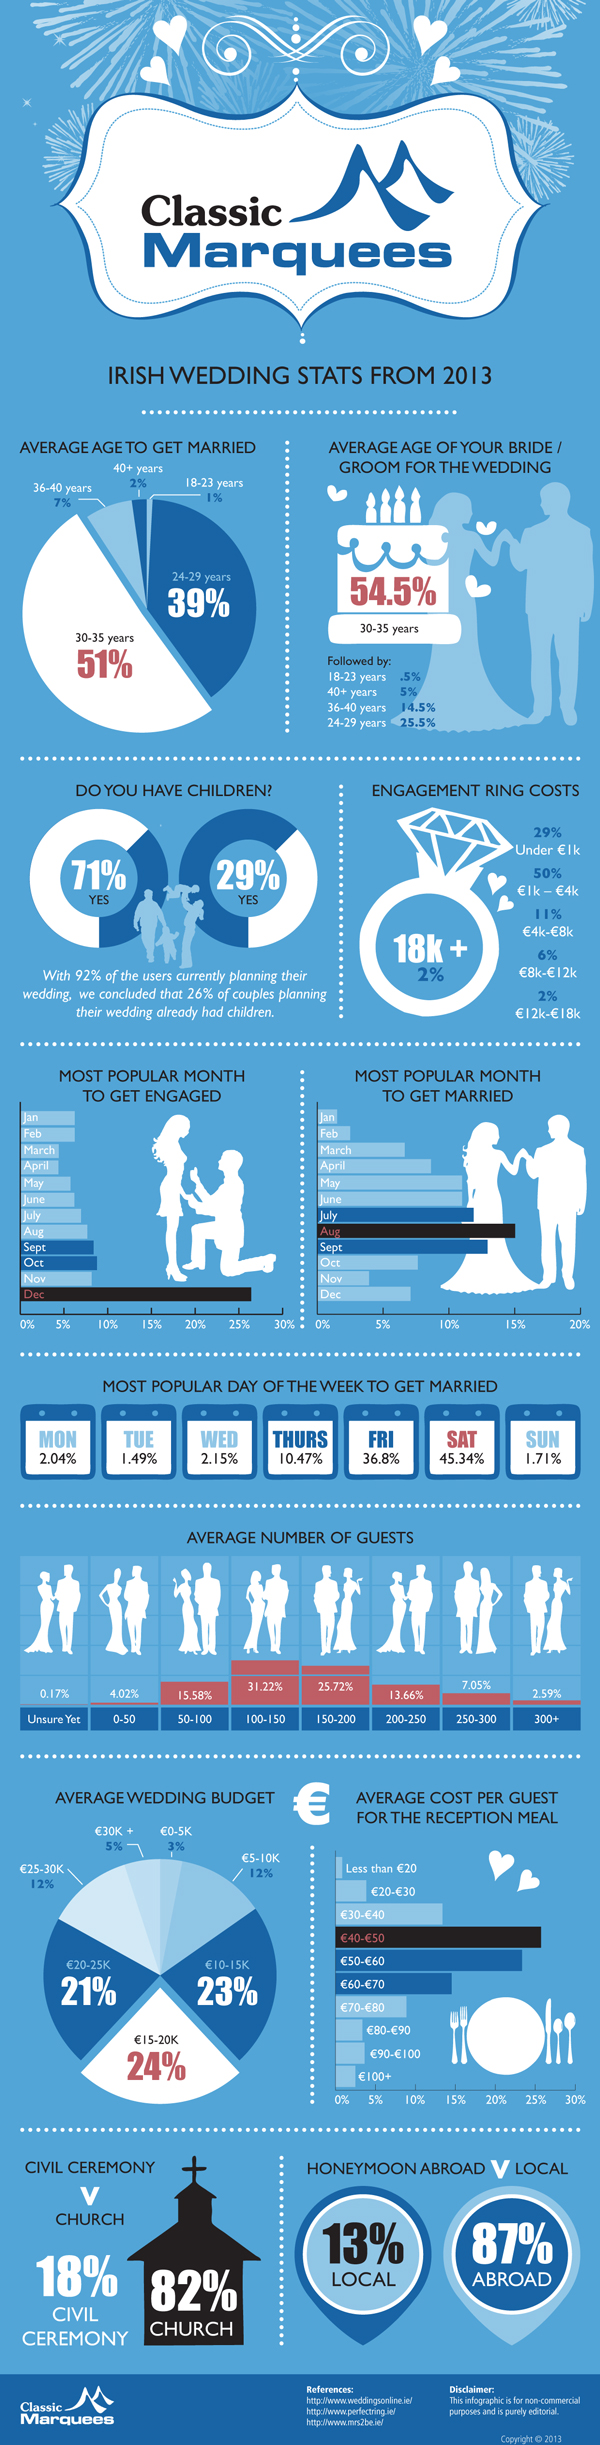 Irish Wedding Stats From 2013